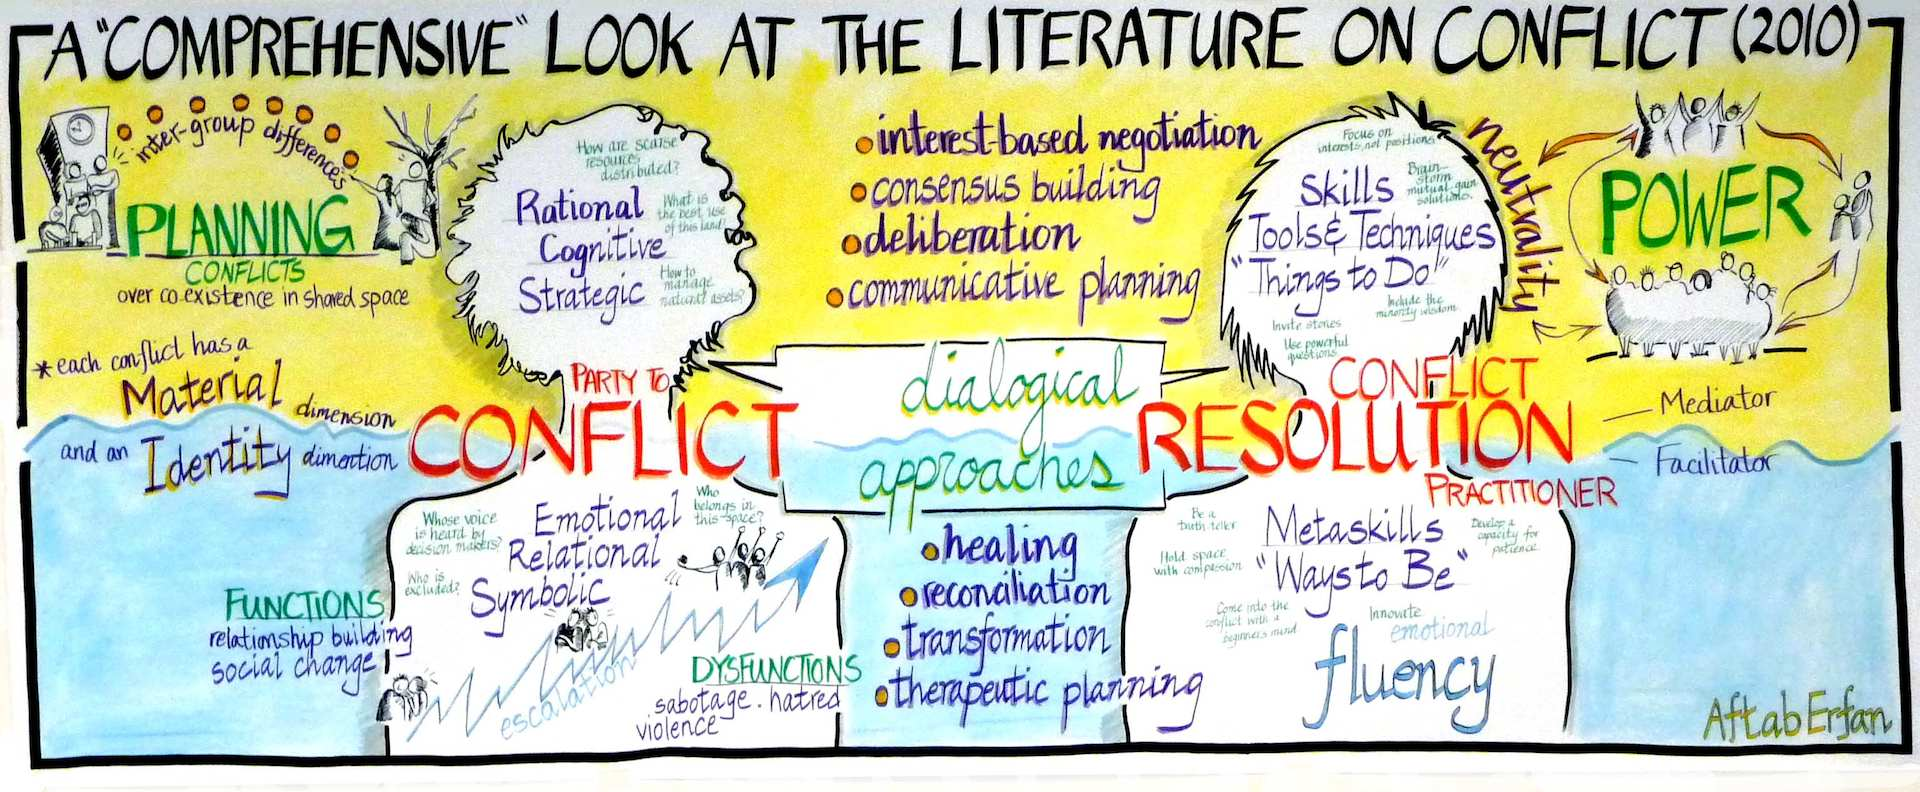 conflict and resolution in literature